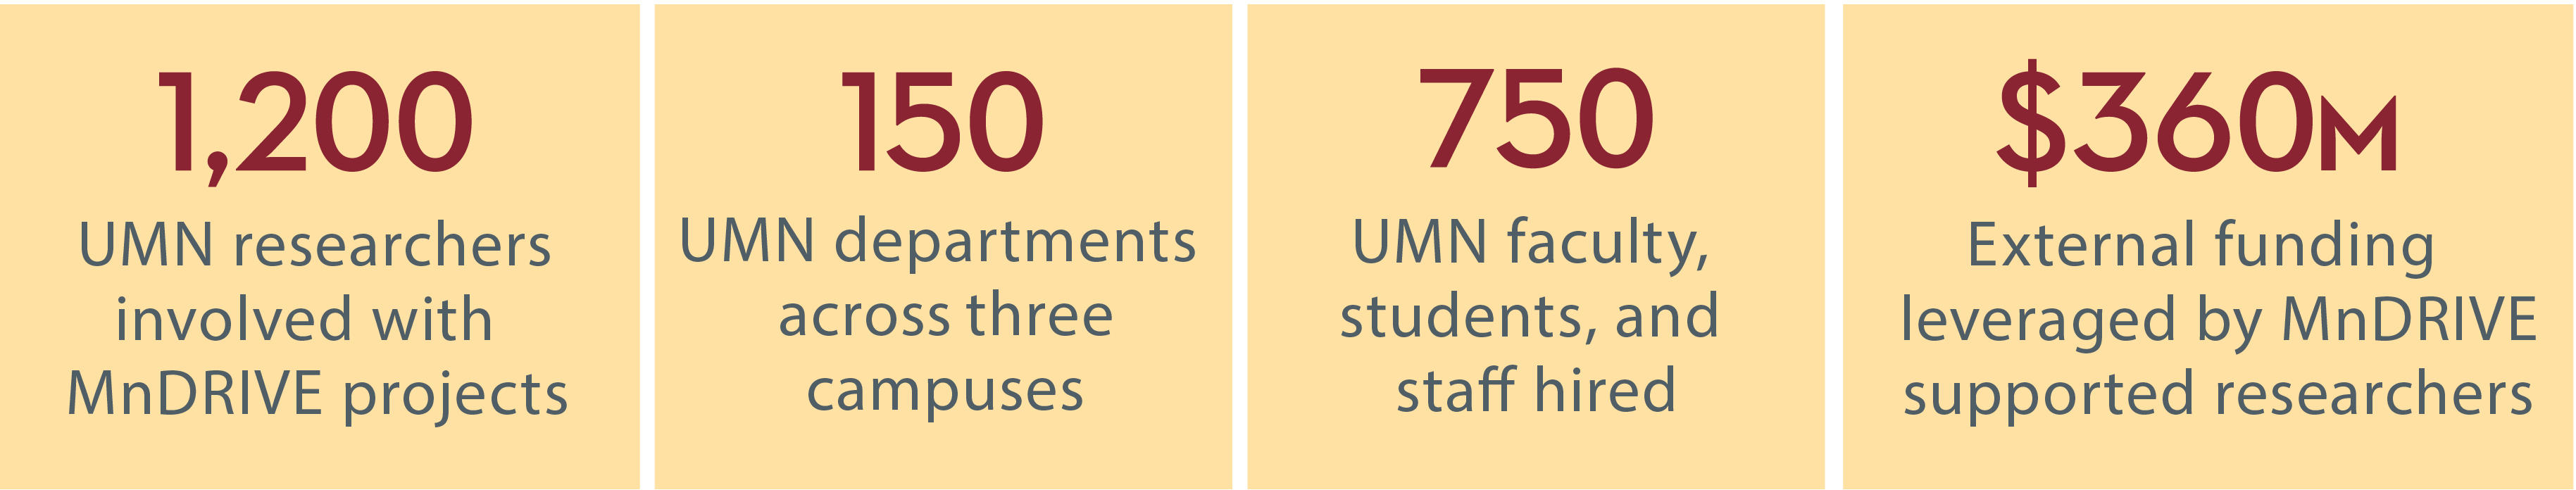 1,200 UMN researchers involved with MnDRIVE projects; 150 UMN departments across three campuses; 750 UMN faculty, students, and staff hired; $360 million external funding leveraged by MnDRIVE supported researchers